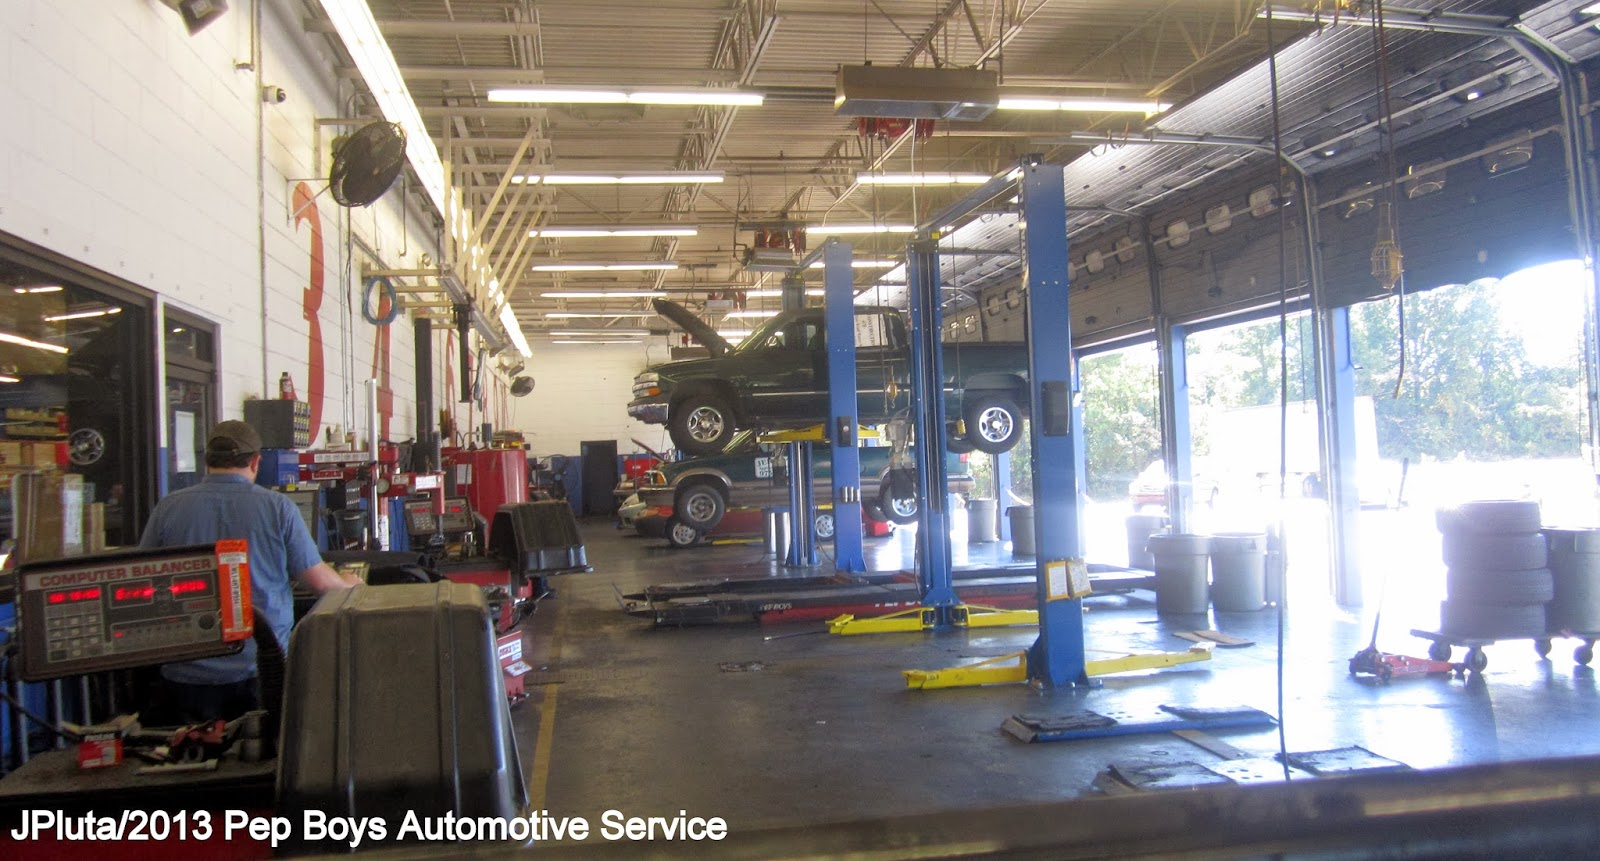 Pep Boys Auto Parts Our team at time2one.tk compare prices on millions of products every day to bring you the best prices online. Our price comparison service will save you time and money thanks to our comprehensive coverage of sellers, reviews, cheapest prices and % Off discounts!